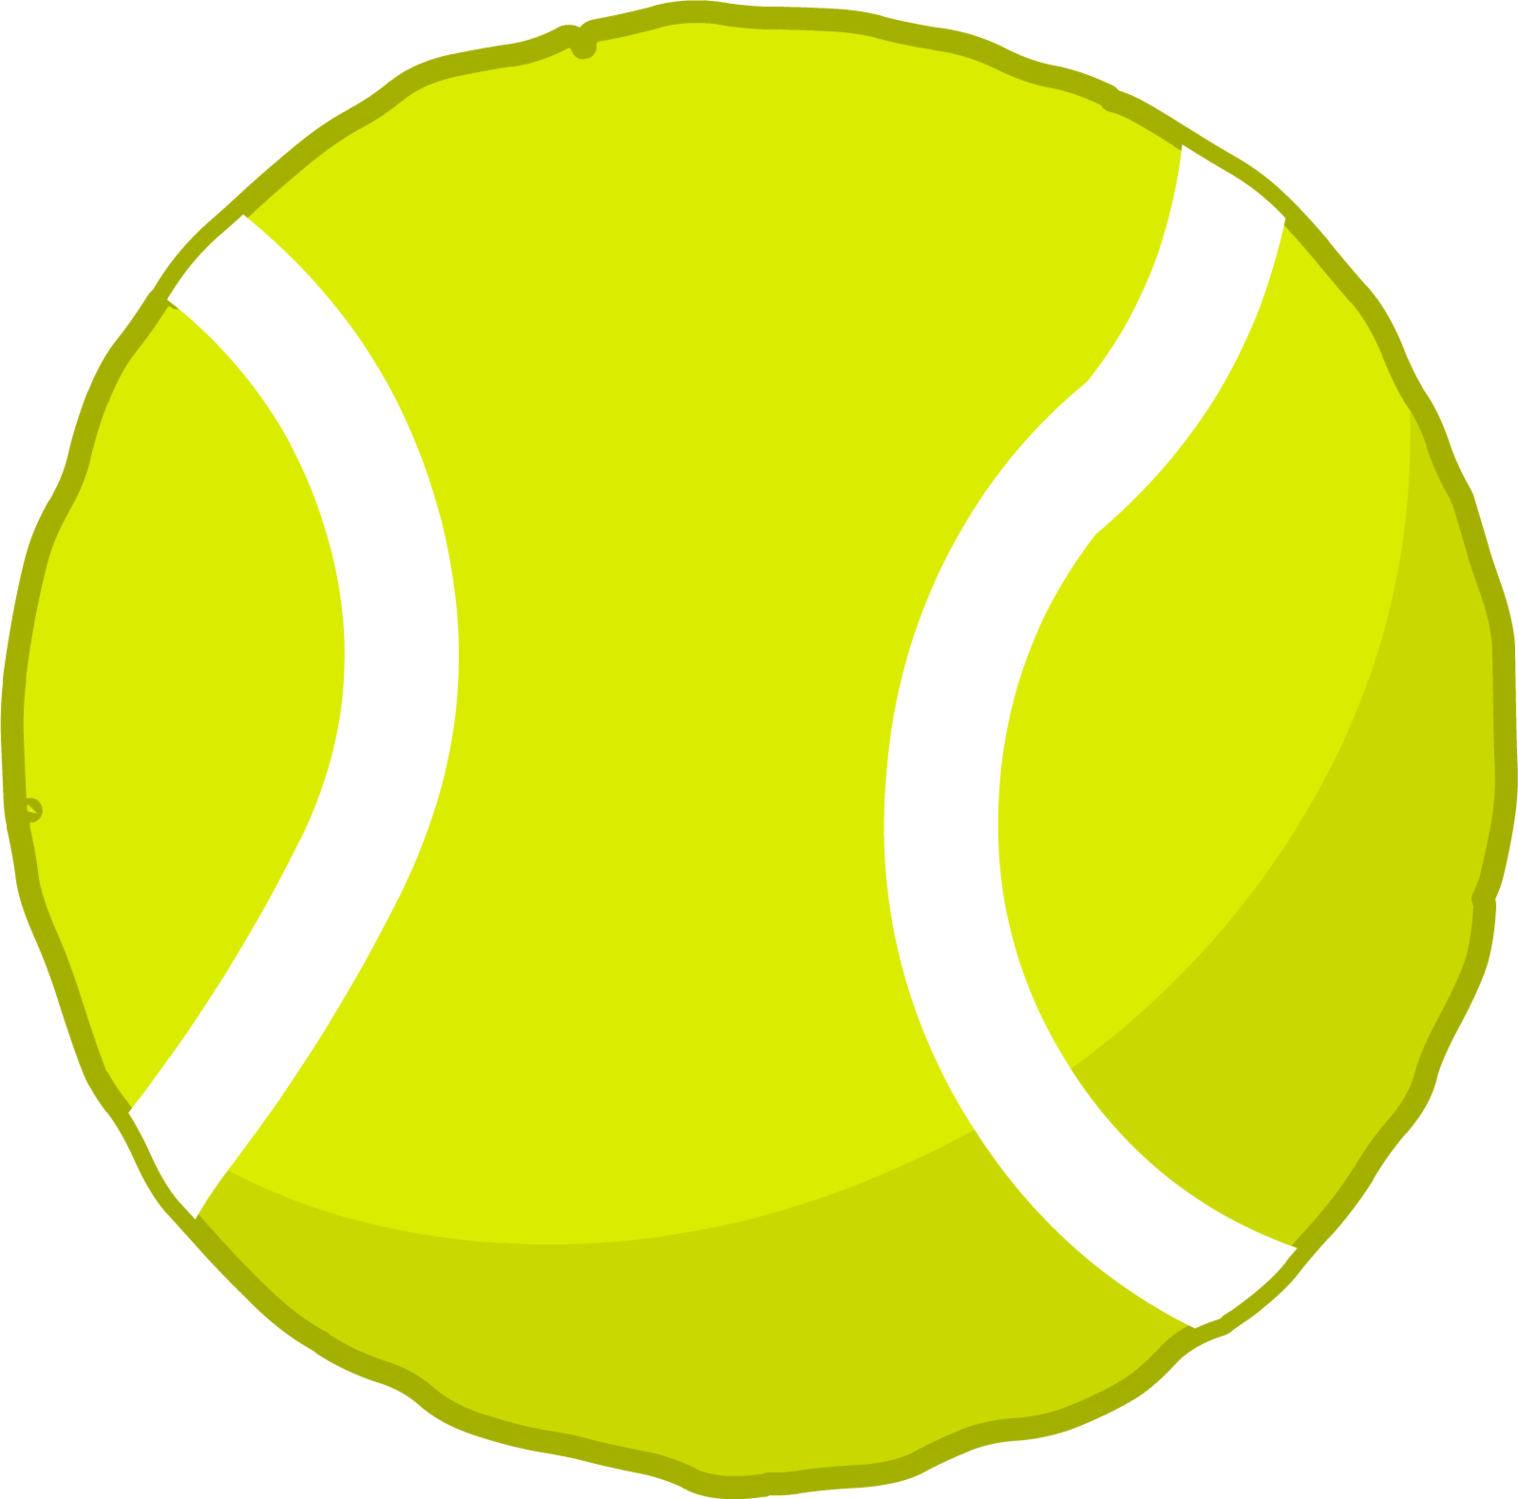 Tennis ball clipart png. Picture of free to